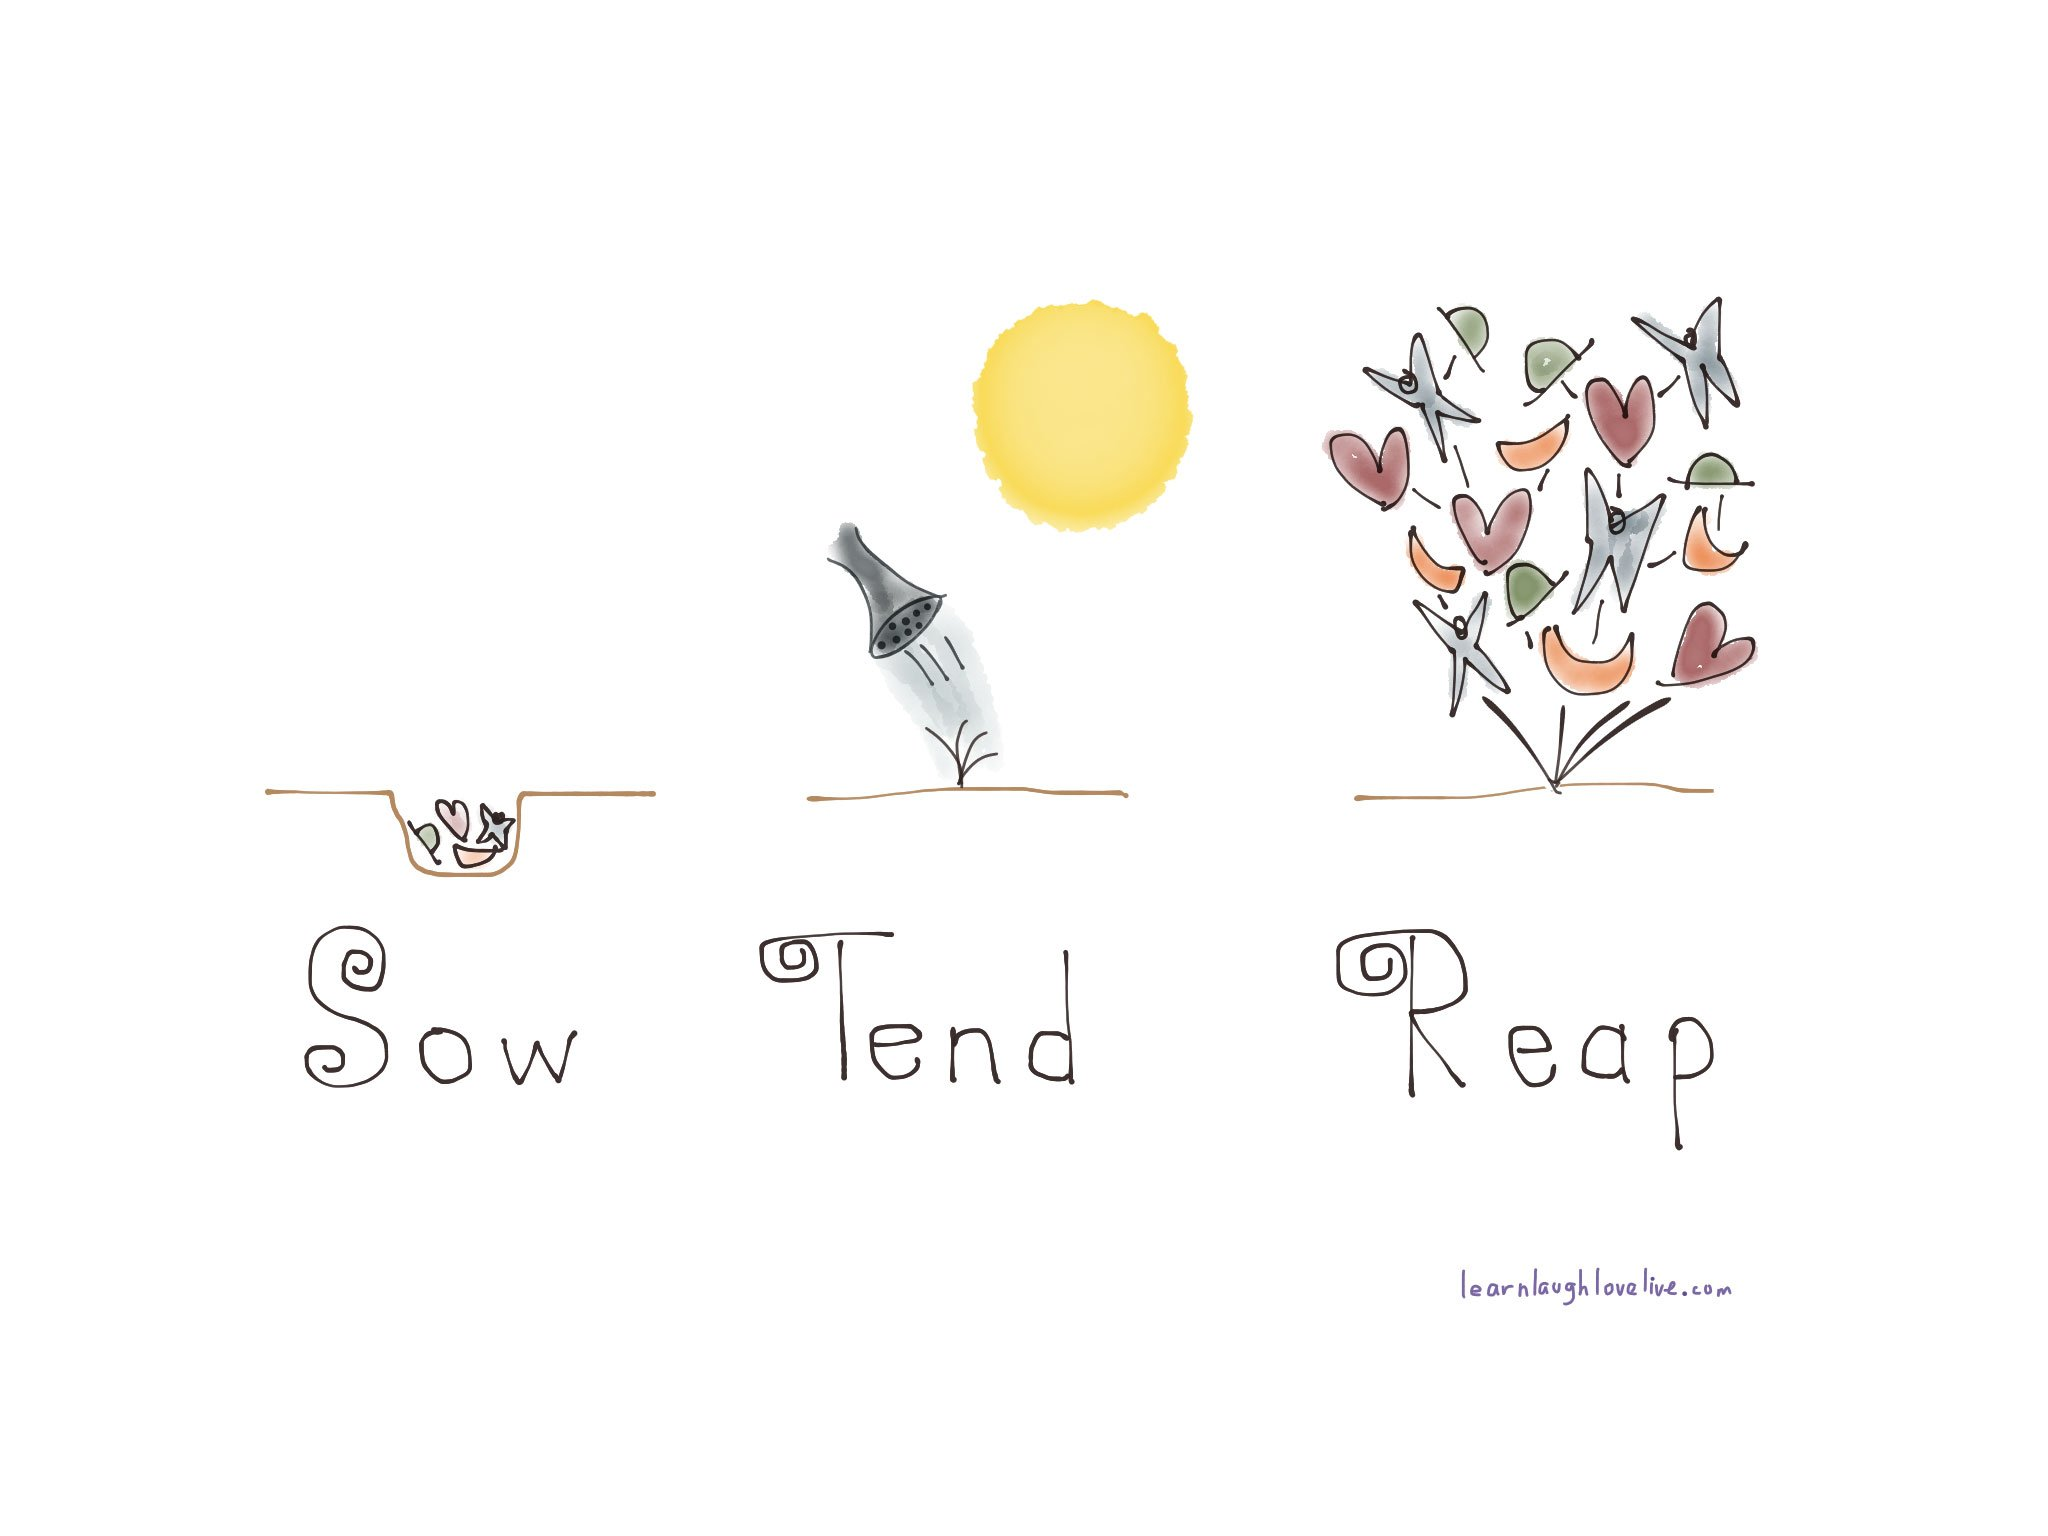 Drawing - Sklar - Sow Tend Reap - learn laugh love live life LRN LAF LUV LIV LYF